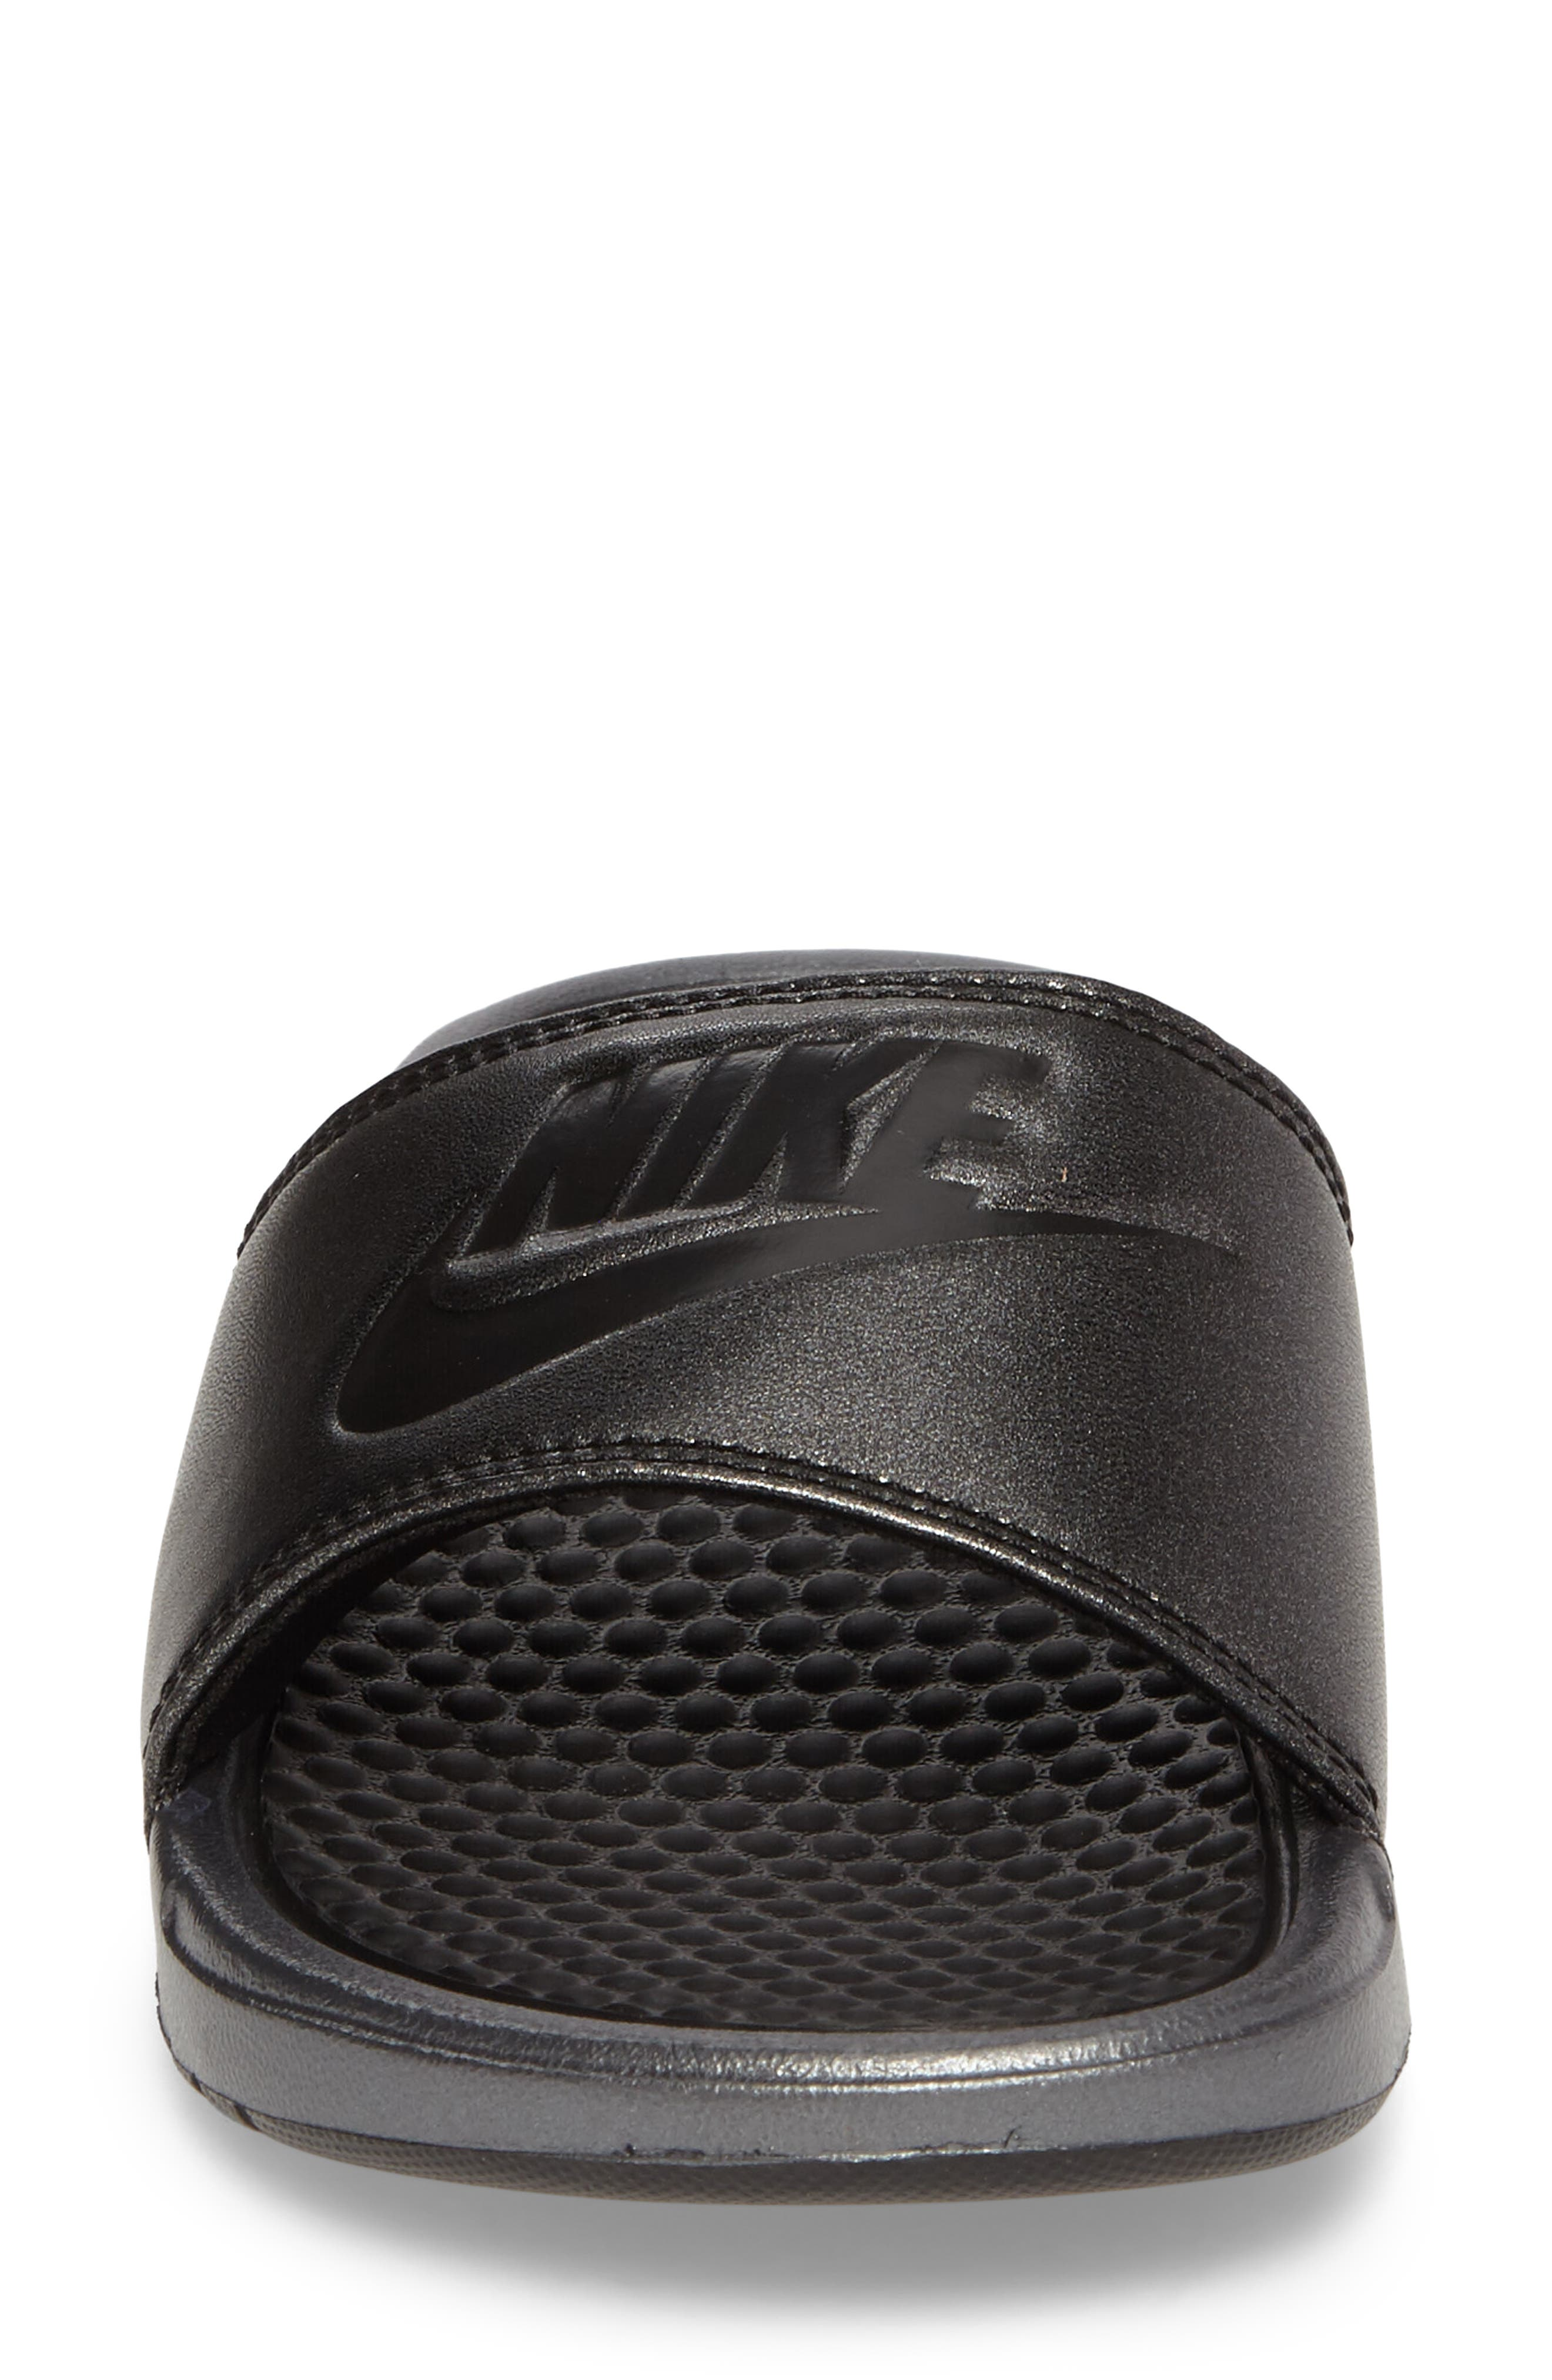 Benassi Slide Sandal,                             Alternate thumbnail 4, color,                             001